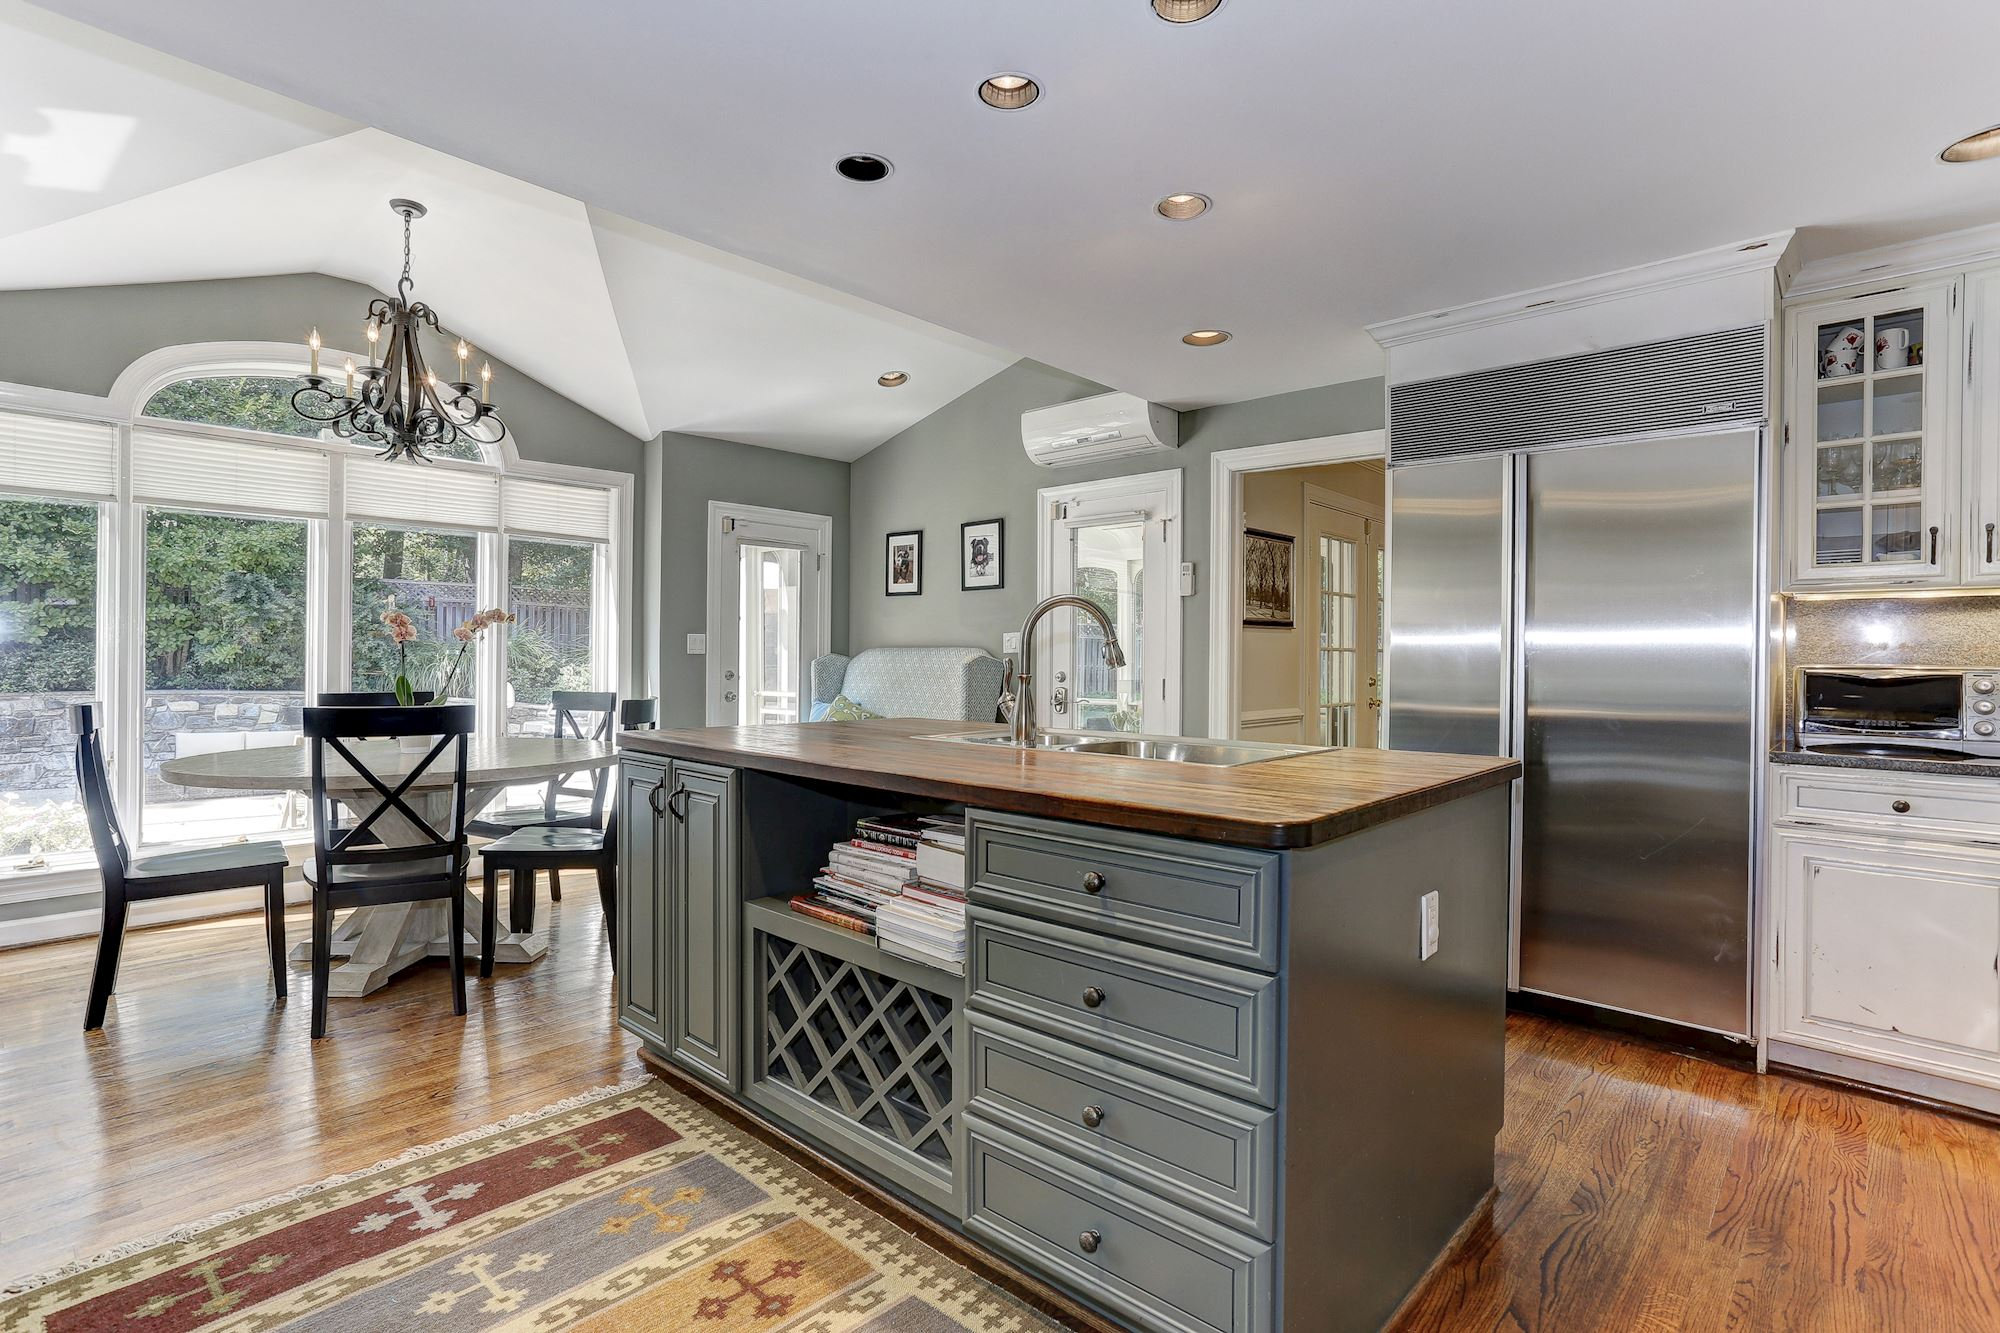 Gorgeous Kitchen Renovation In Potomac Maryland: 6 SPRINKLEWOOD CT, POTOMAC, MD 20854